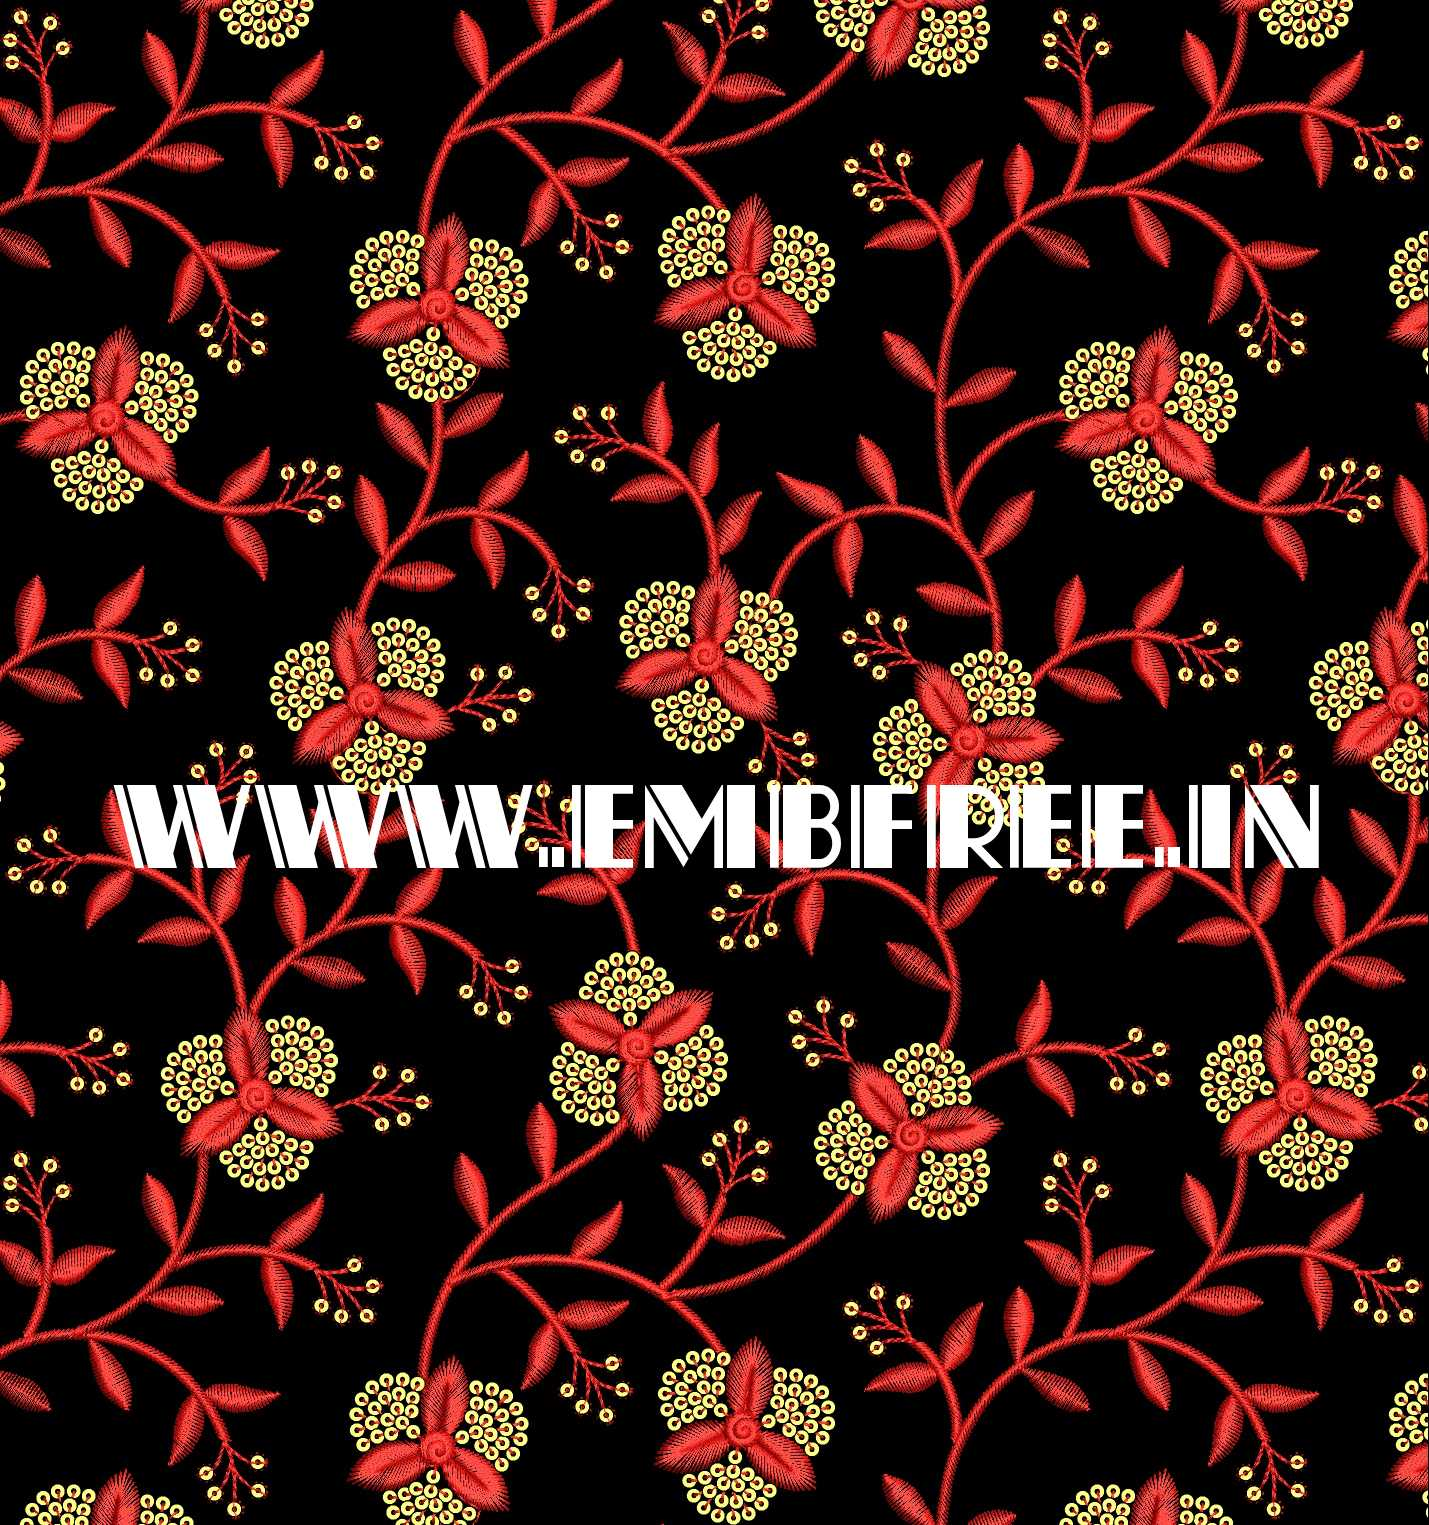 Embroidery Design Free Download Embfree